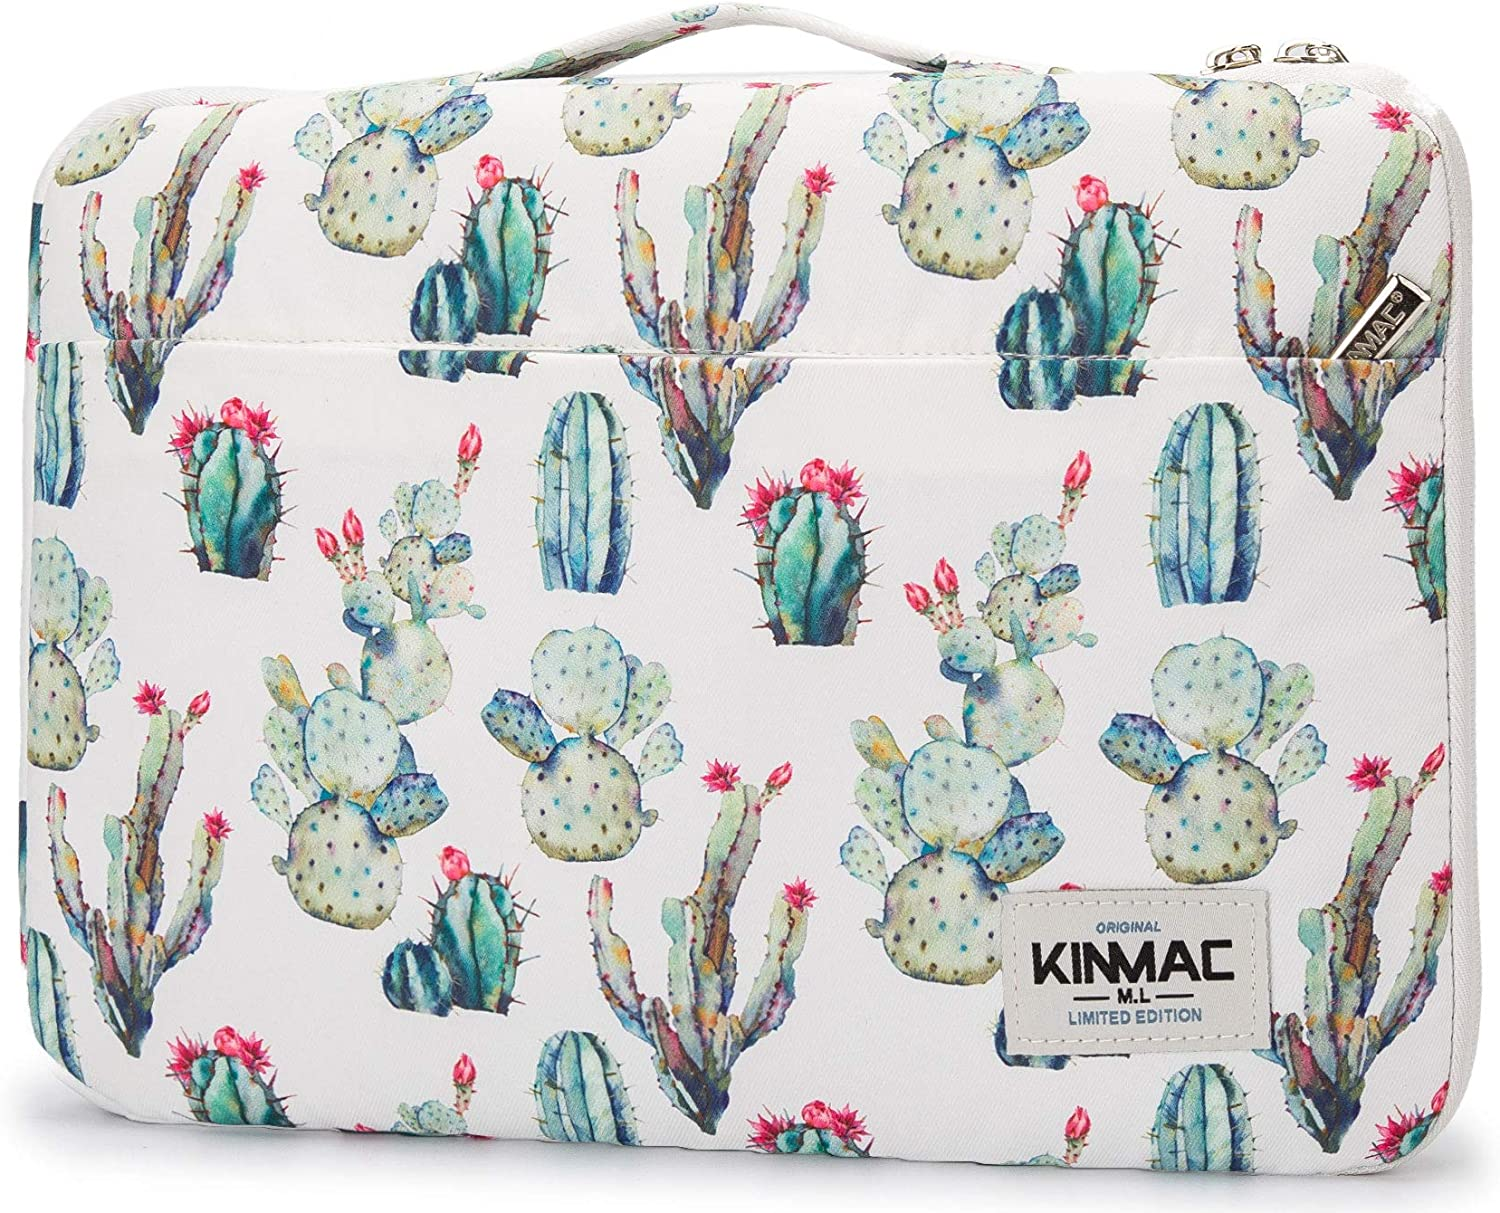 Kinmac Cactus 360° Cushion Protective Waterproof Laptop Case Bag Sleeve with Handle Compatible with 15 inch-15.6 inch Laptop